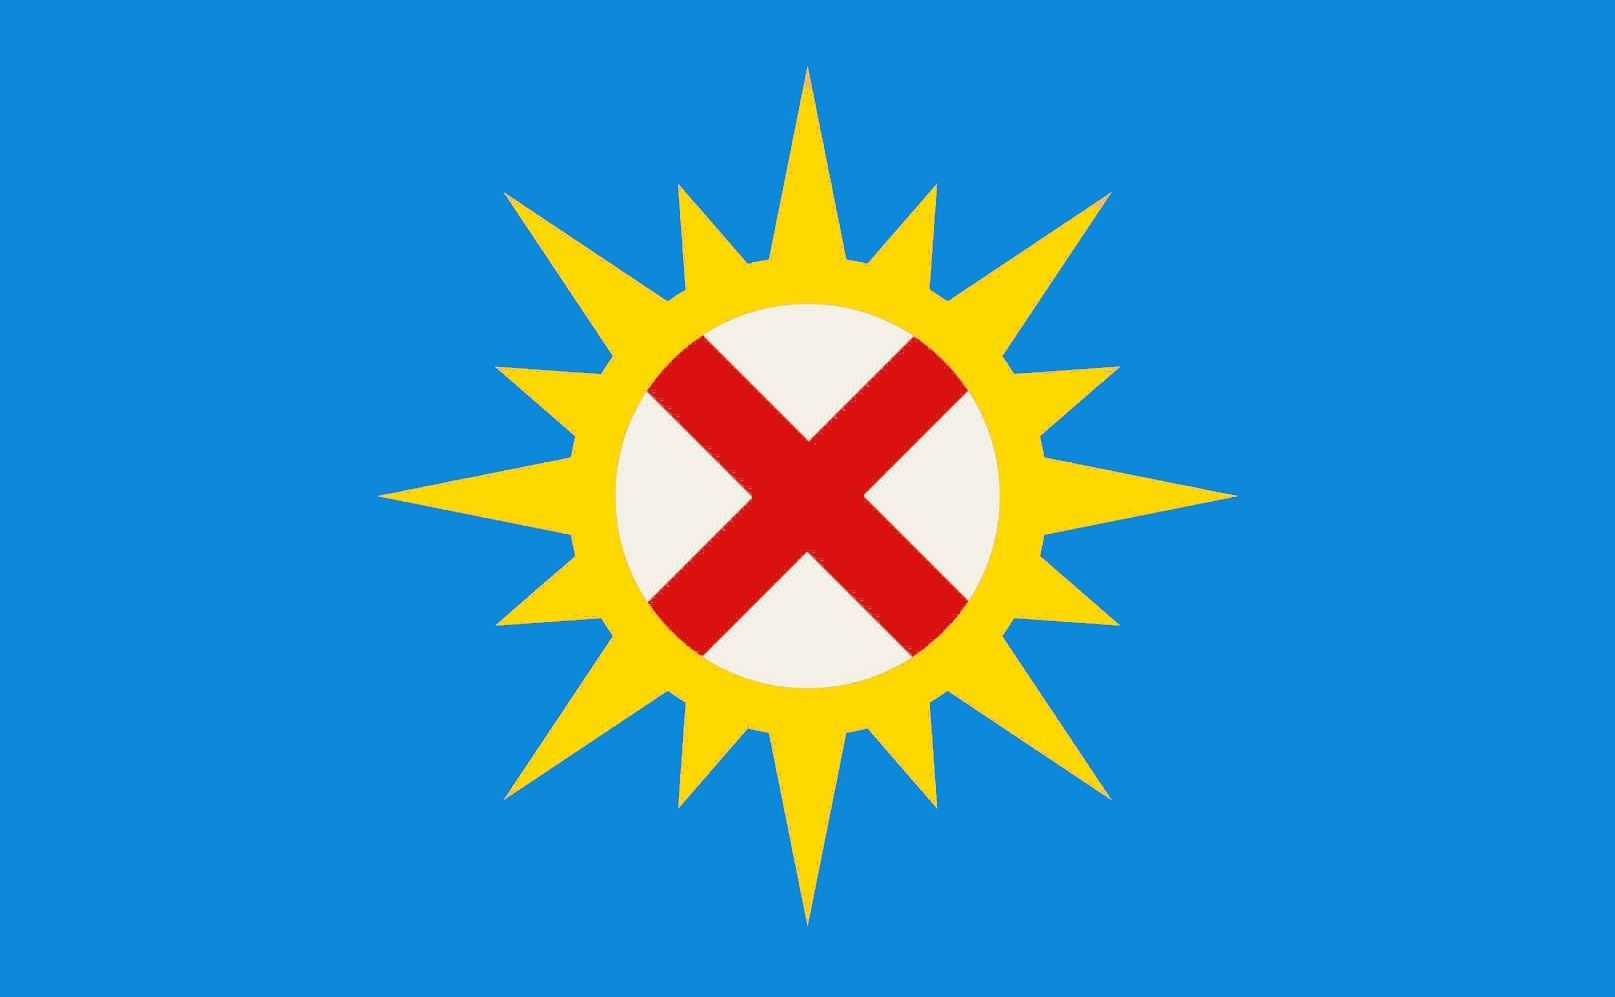 Proposed Florida flag redesign State flags, Flag, Icon